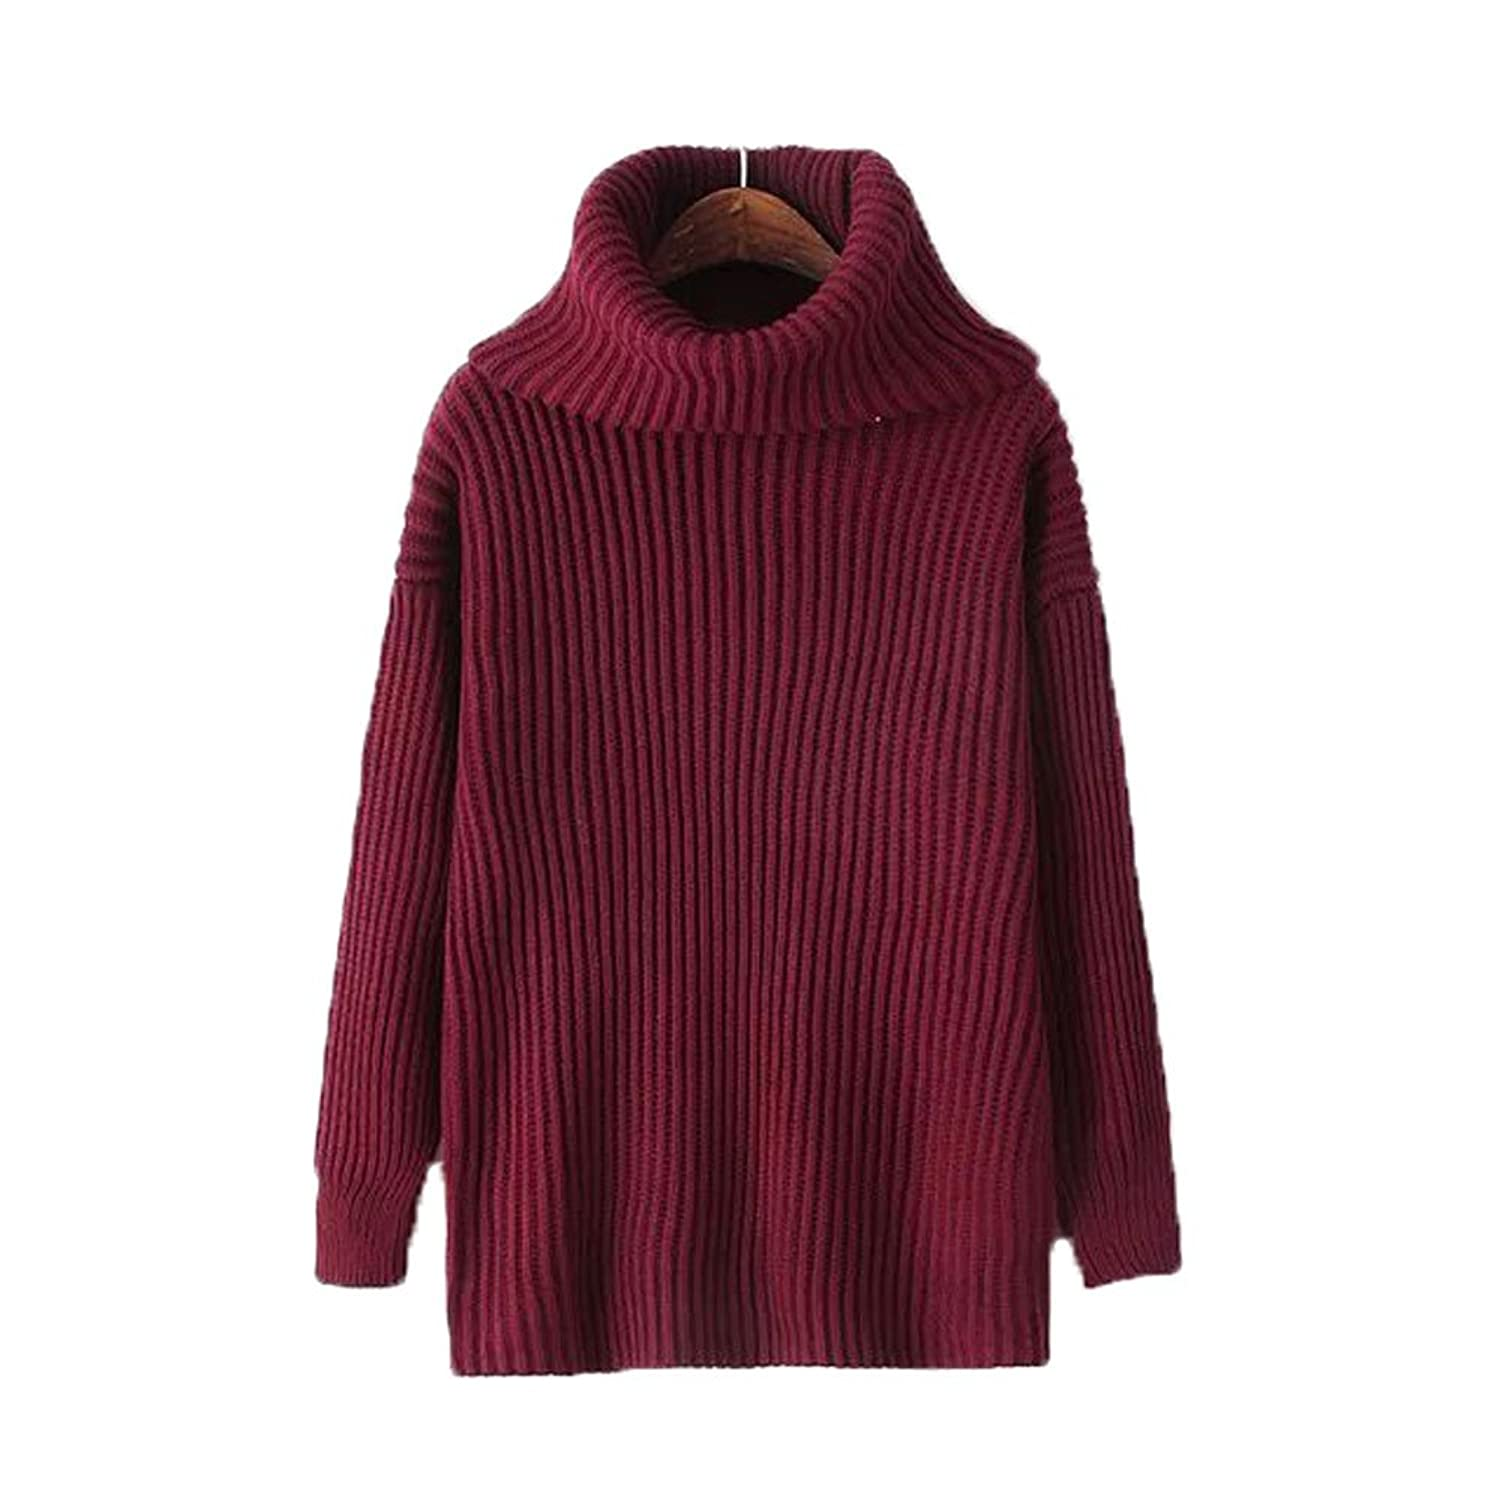 Kayleen Cordeiro Women's Casual Winter Thick Turtleneck Loose Pullover Sweaters